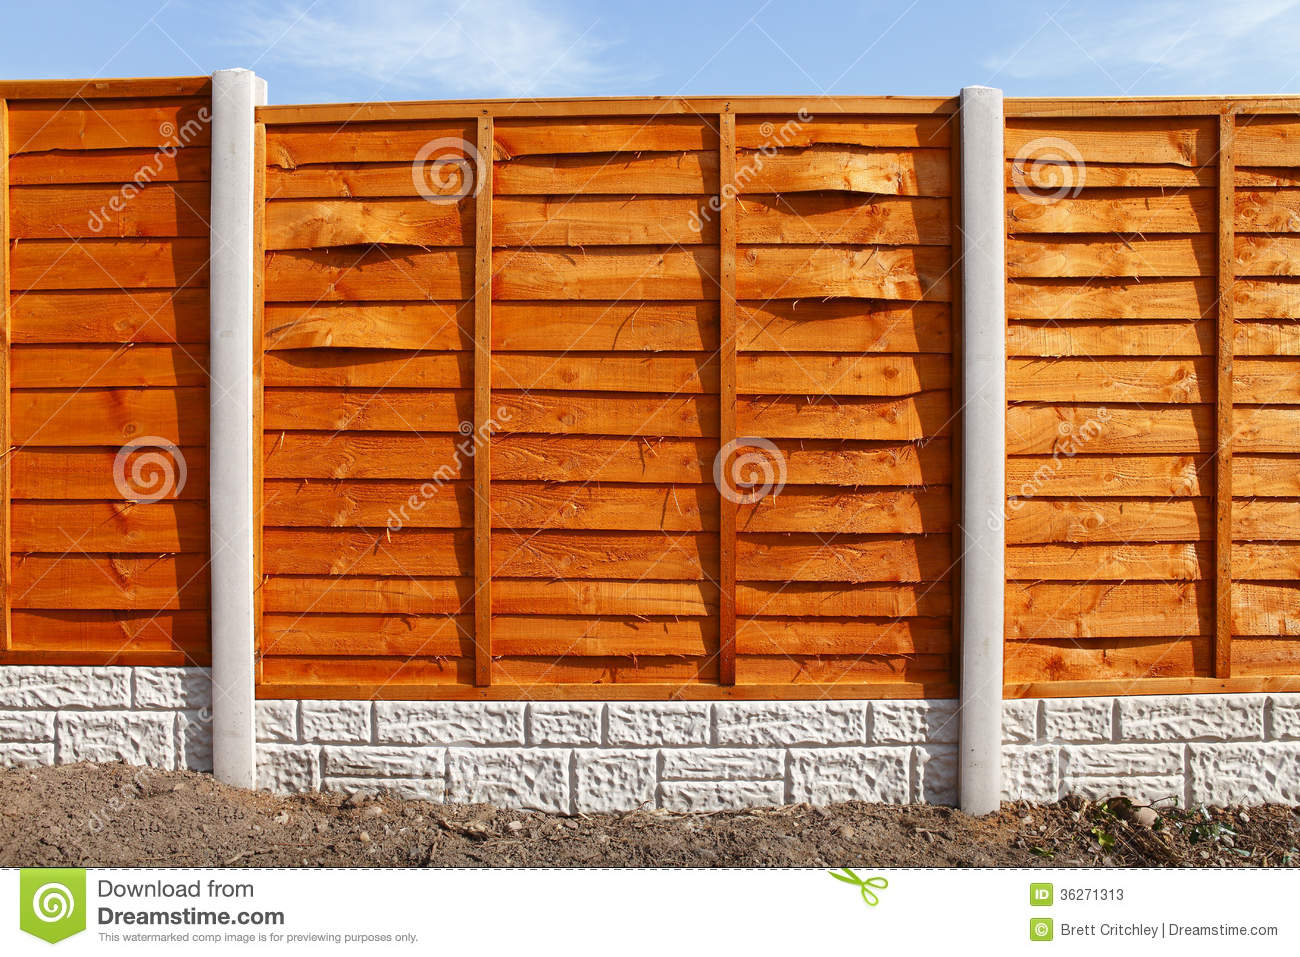 New fence panels stock image  Image of timber, stained